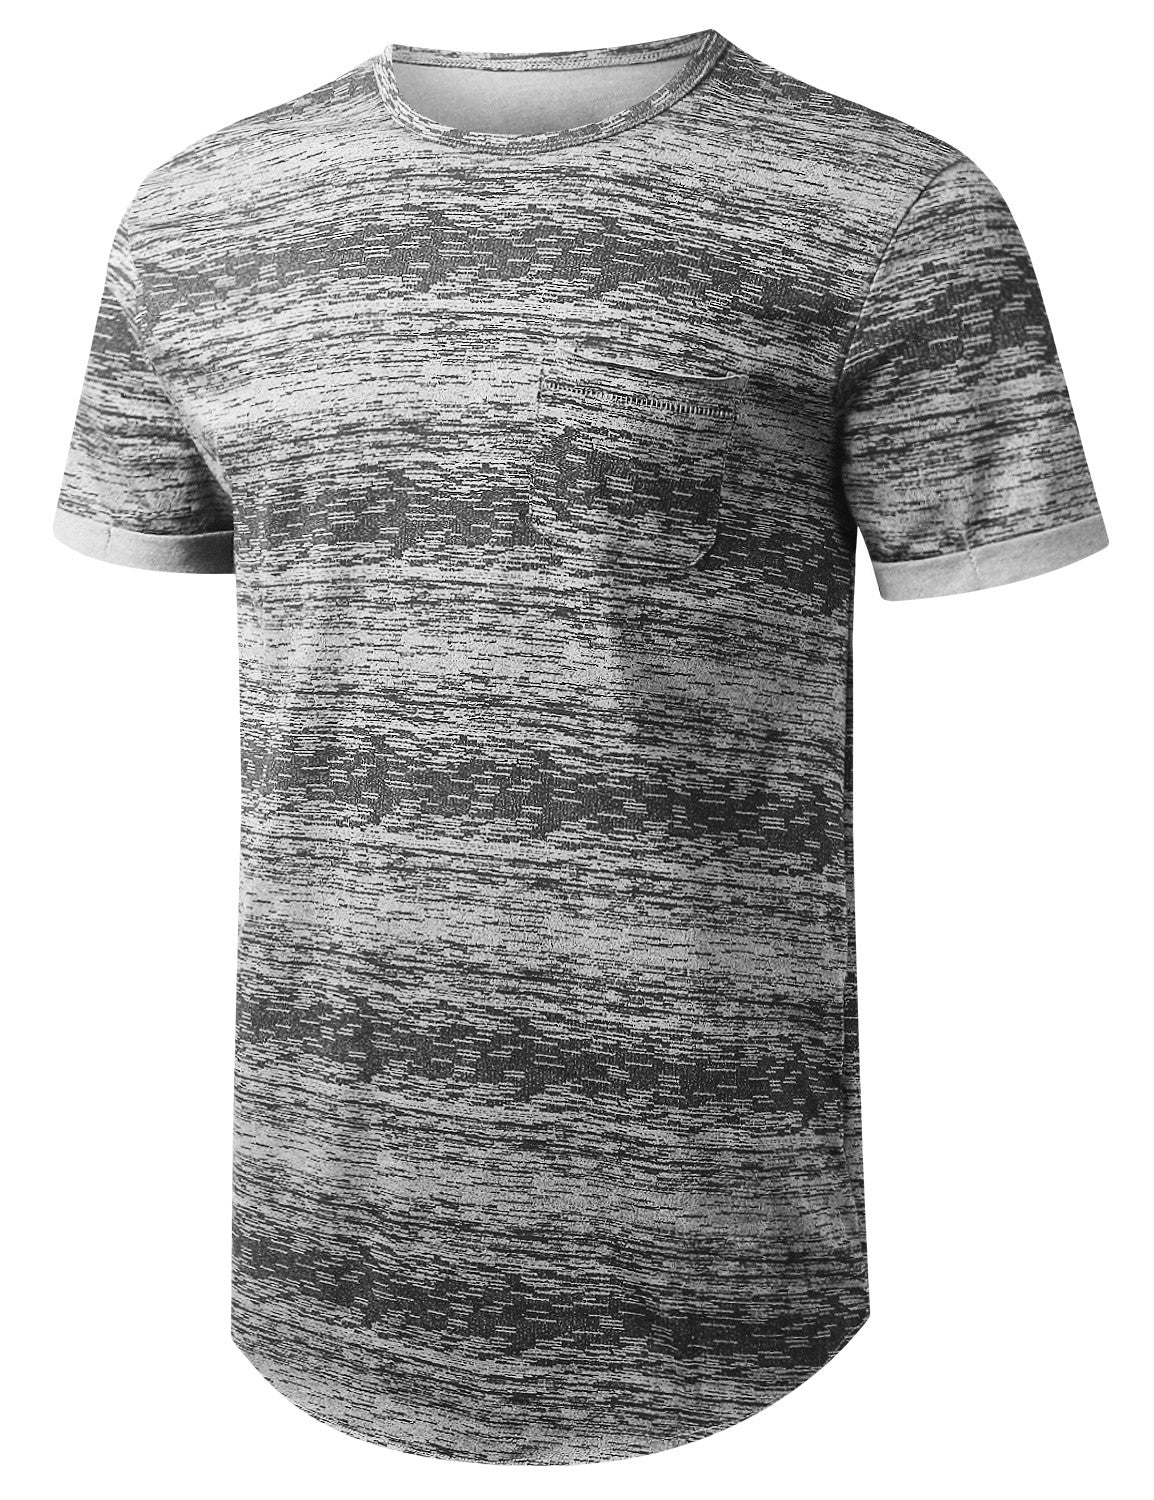 HGRAY Space Dye Paint Pocket T-shirt - URBANCREWS